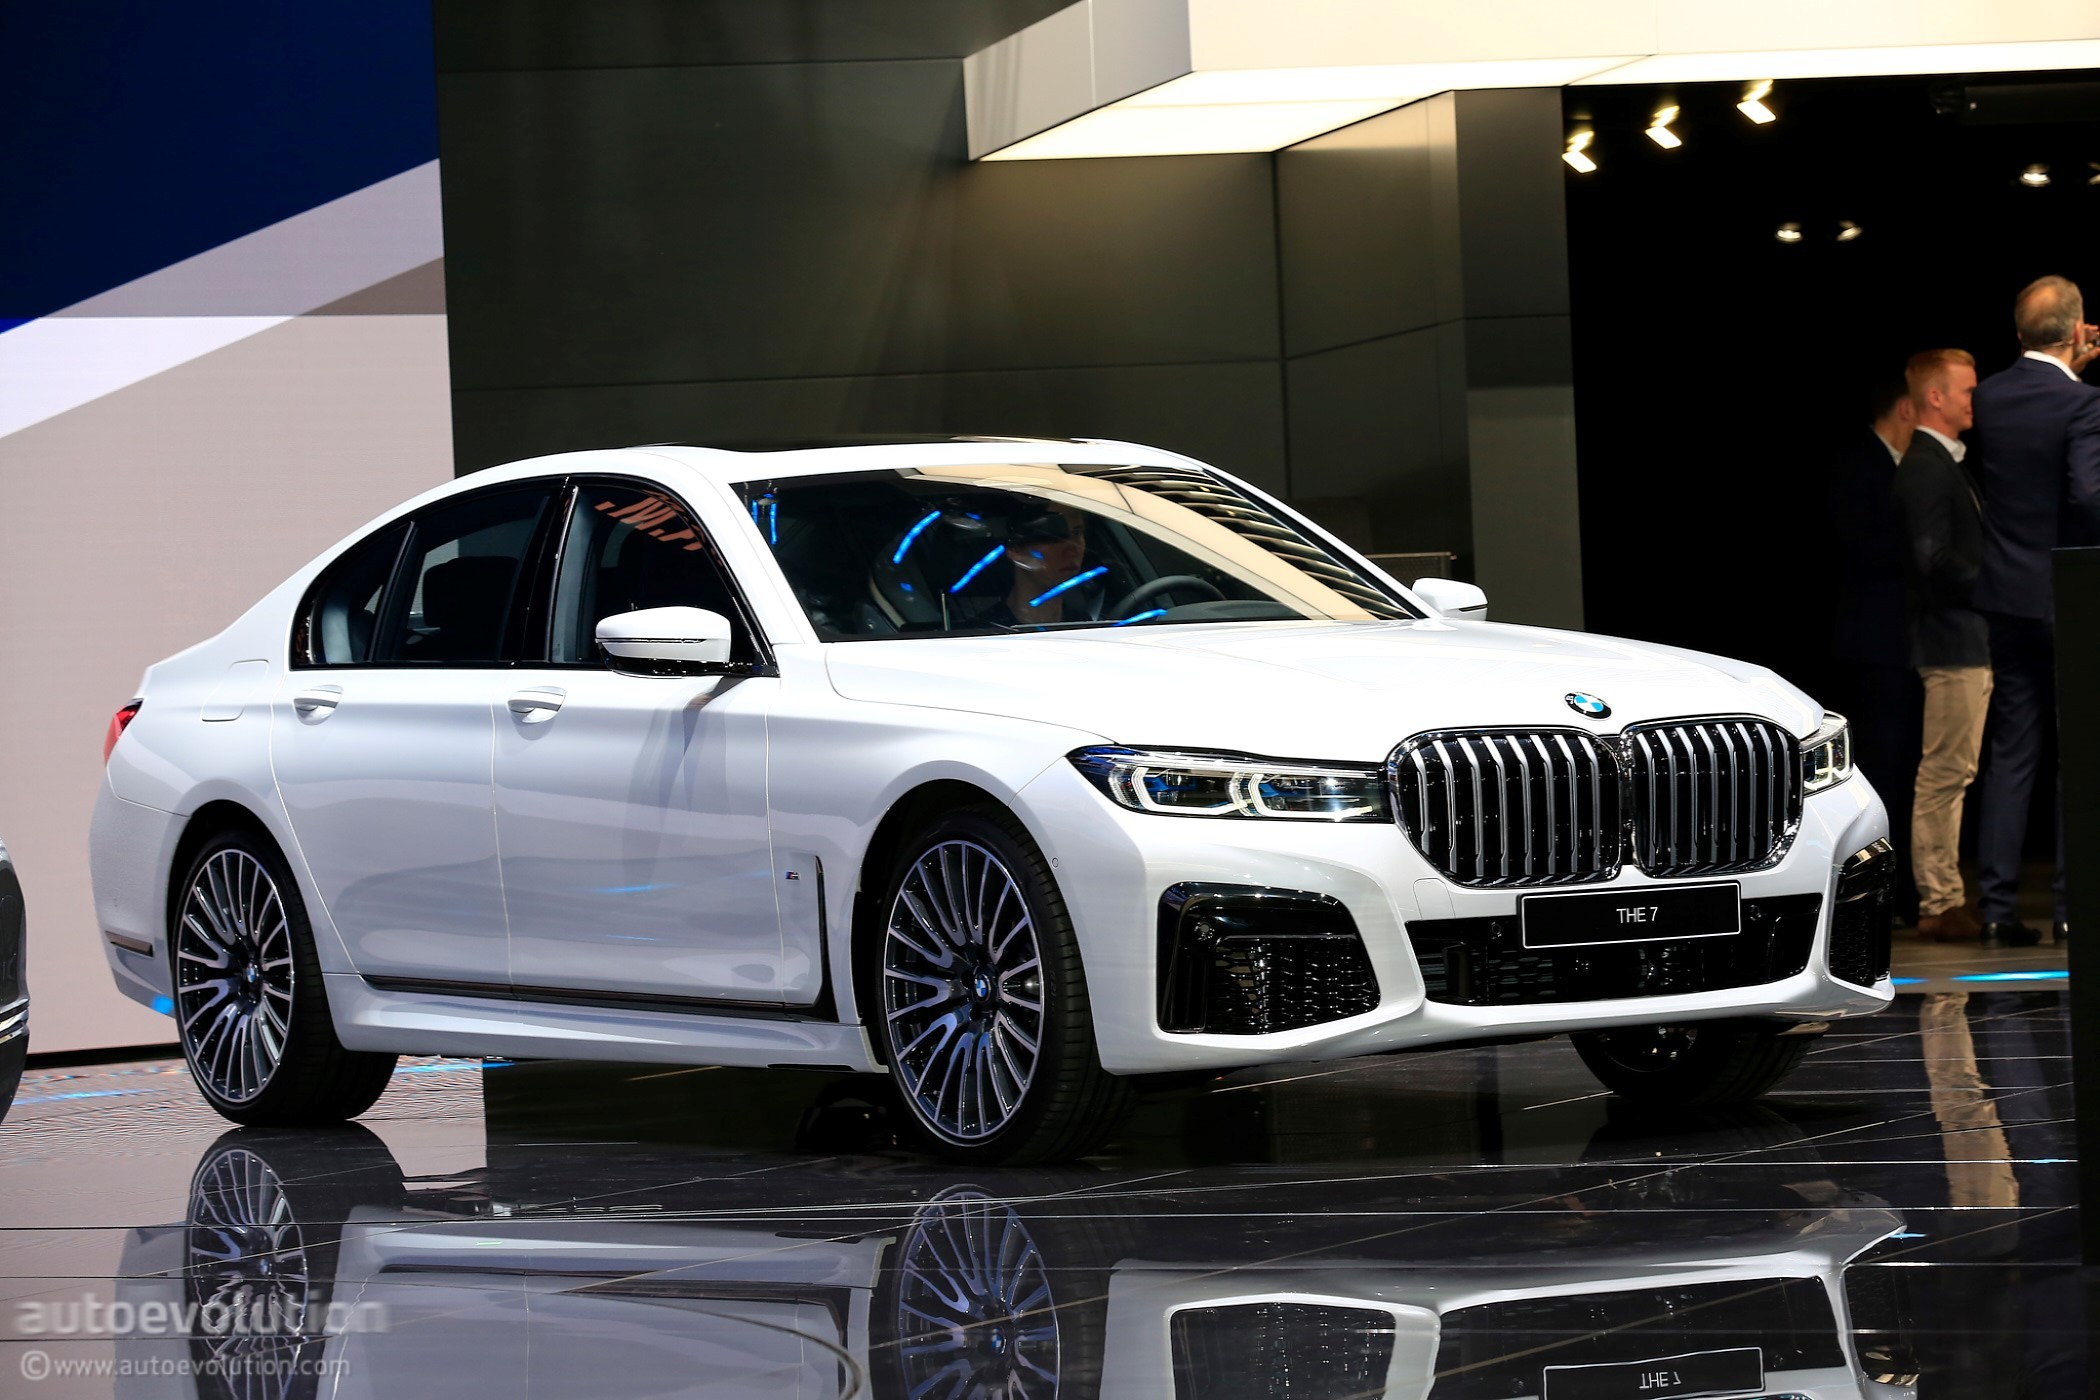 2020 Bmw 7 Series Look Dignified In Geneva Autoevolution